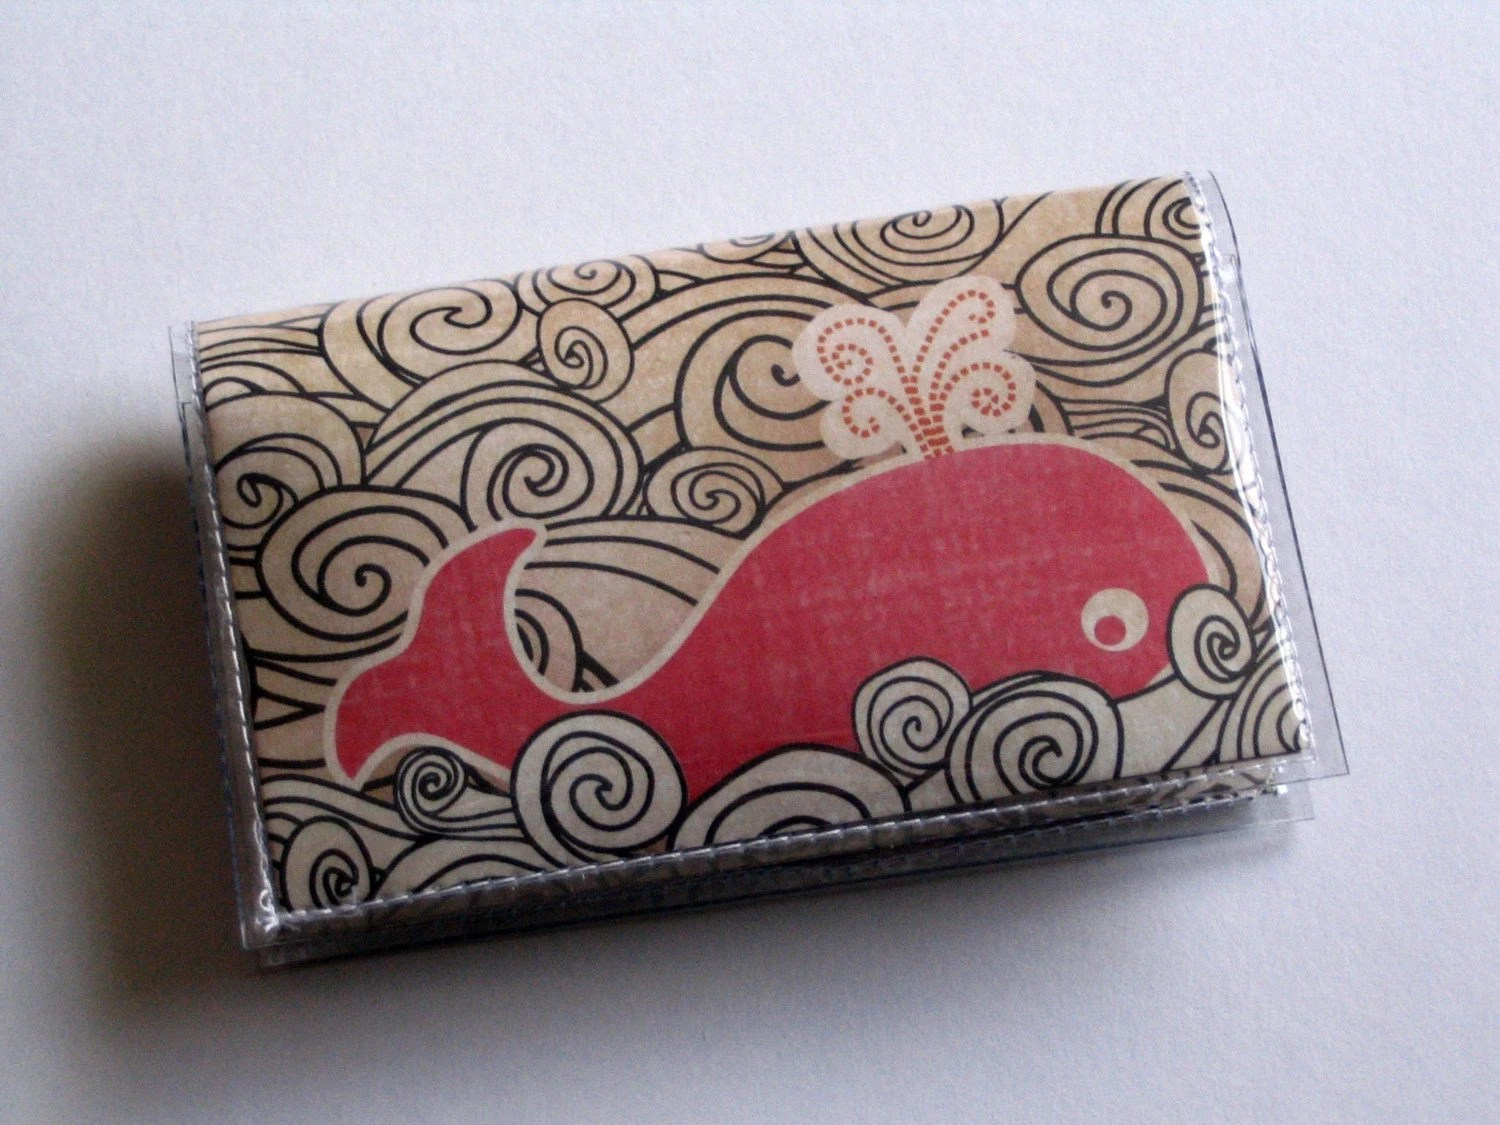 Design your own Quick Snap Cardholder